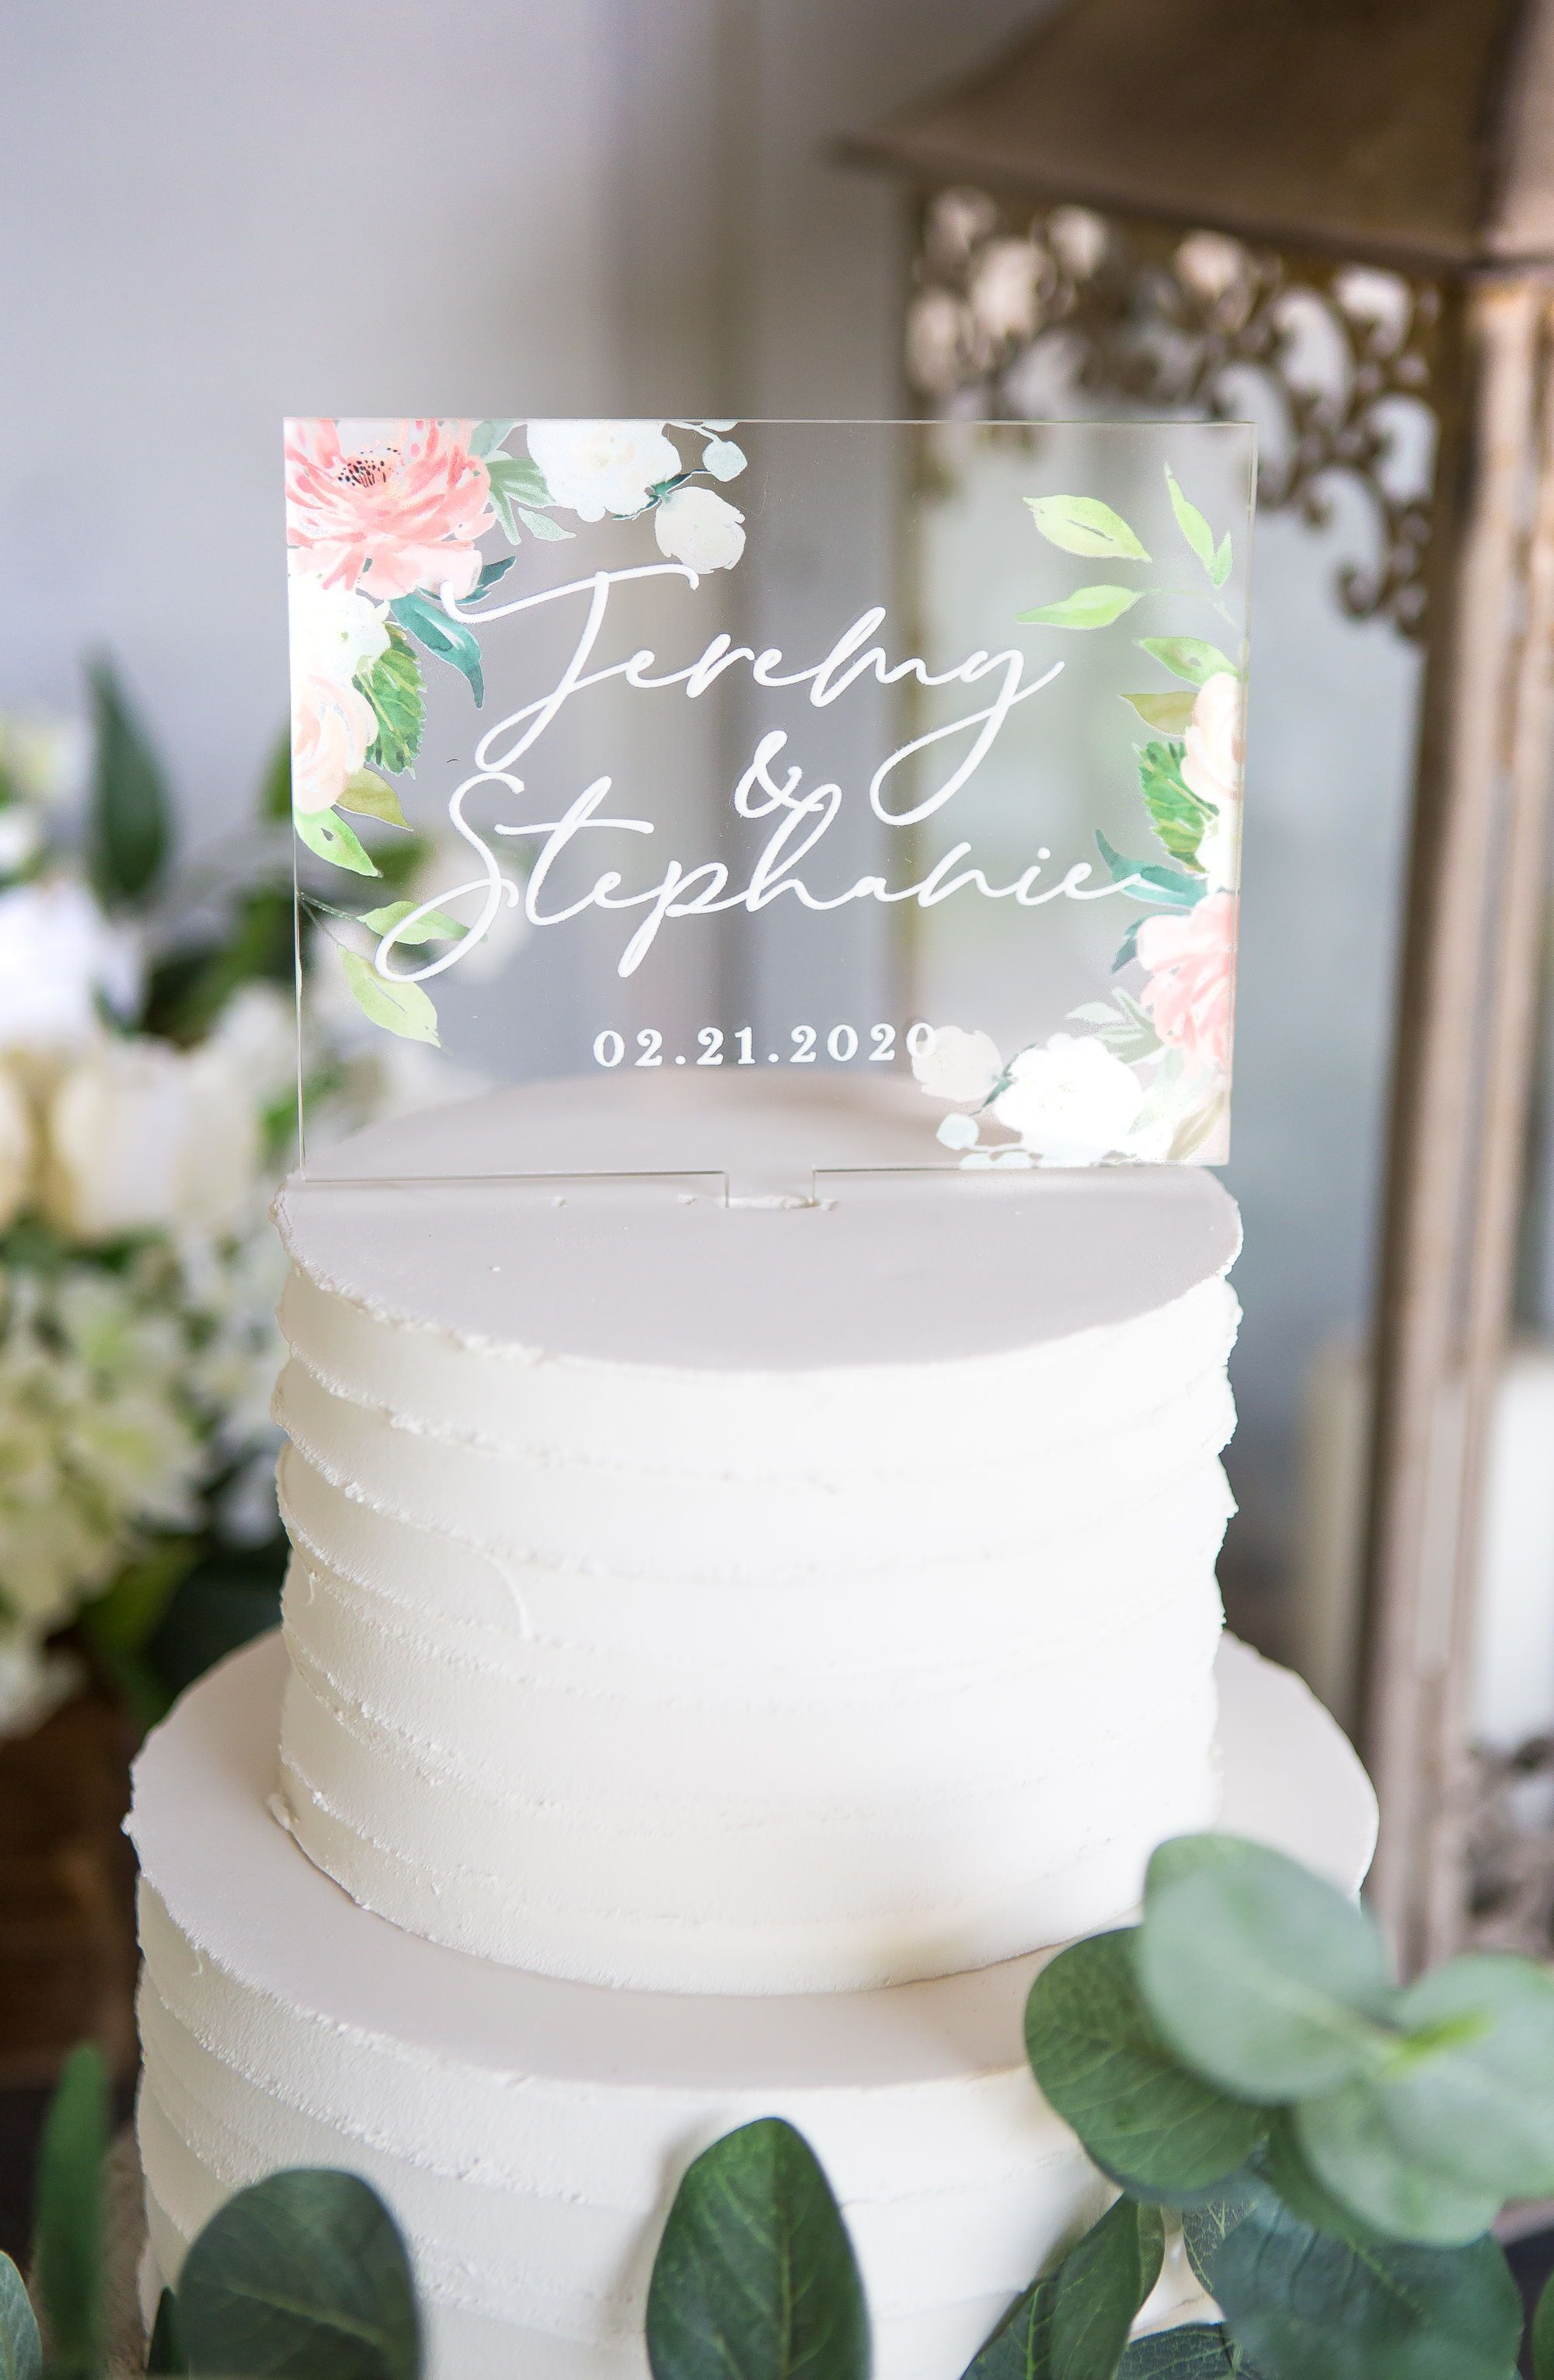 Wedding Cake Topper Clear Acrylic Floral Personalized Cake Etsy Wedding Cake Toppers Wedding Decorations Wedding Cakes